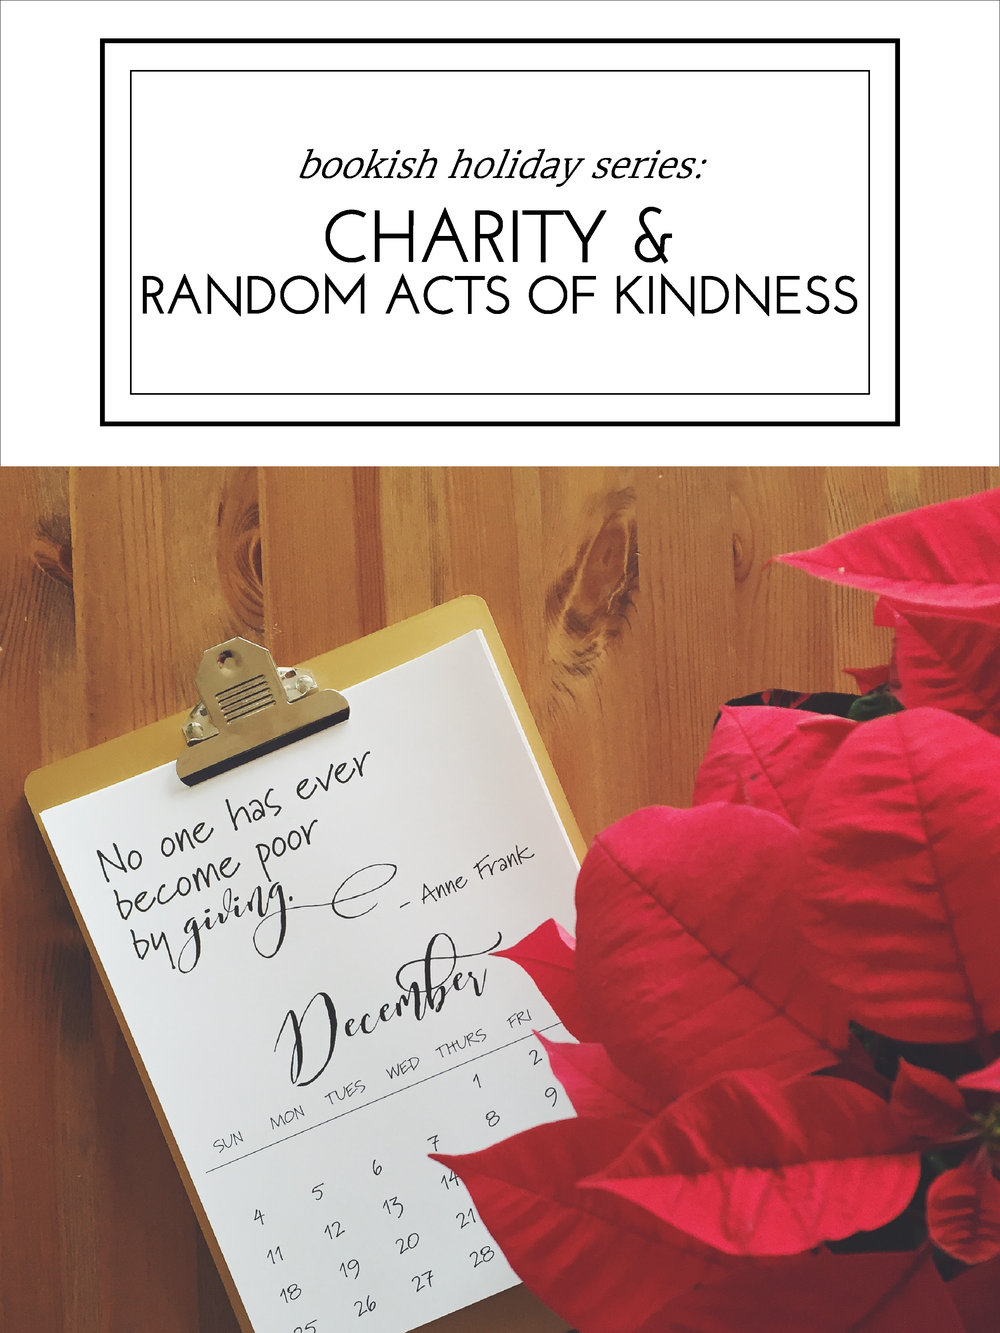 Bookish Holiday Series: Charity and Random Acts of Kindness - how to make a real difference this Christmas